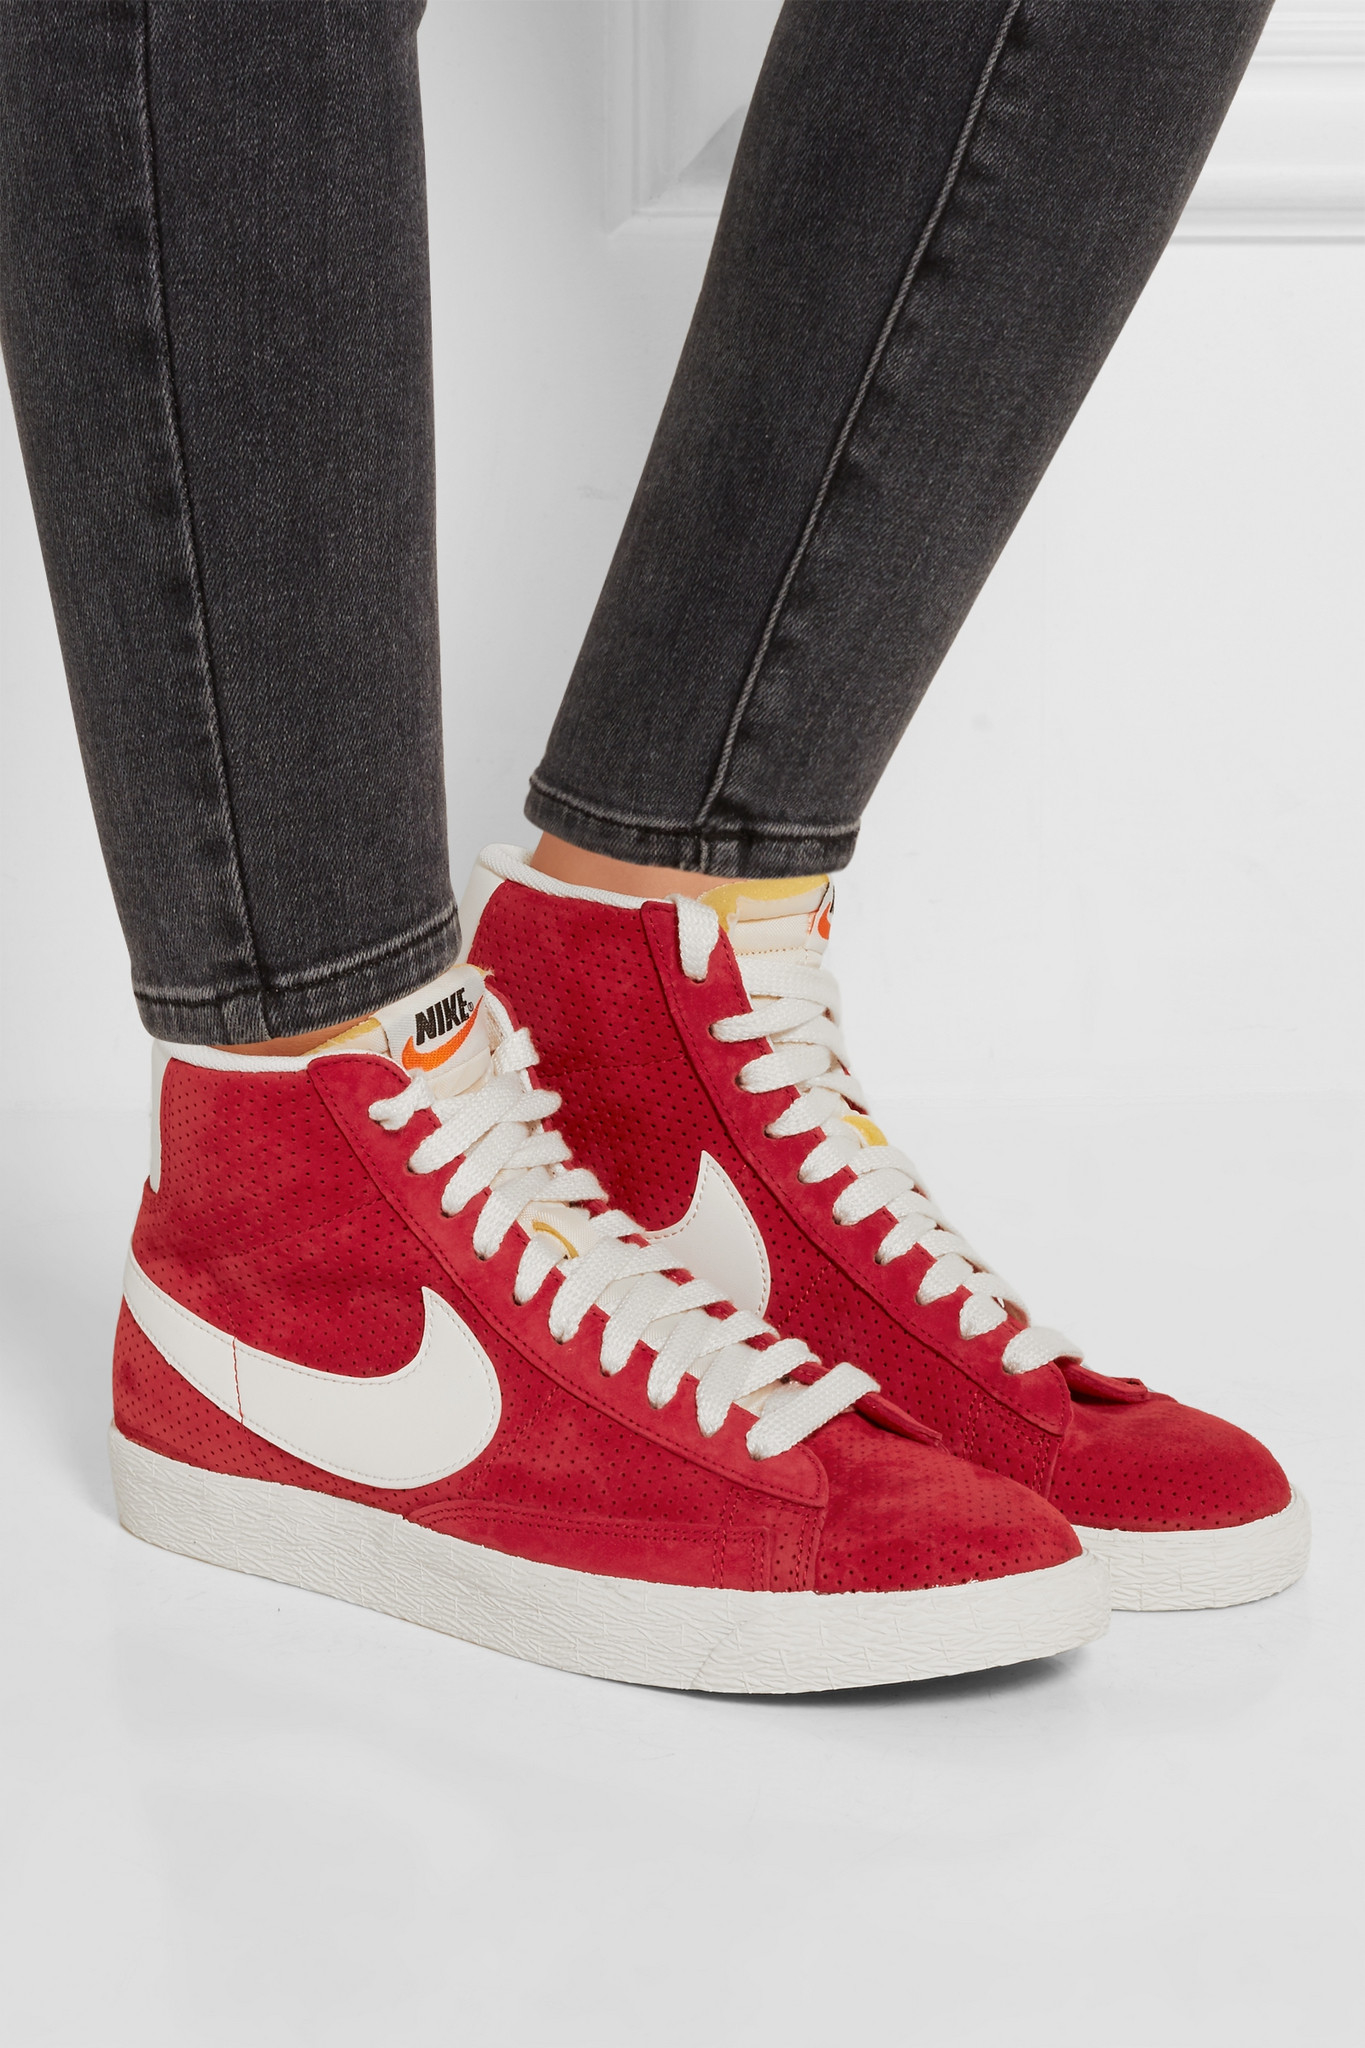 the best attitude 50933 07c4b Nike Blazer Perforated Suede High-top Sneakers in Red - Lyst